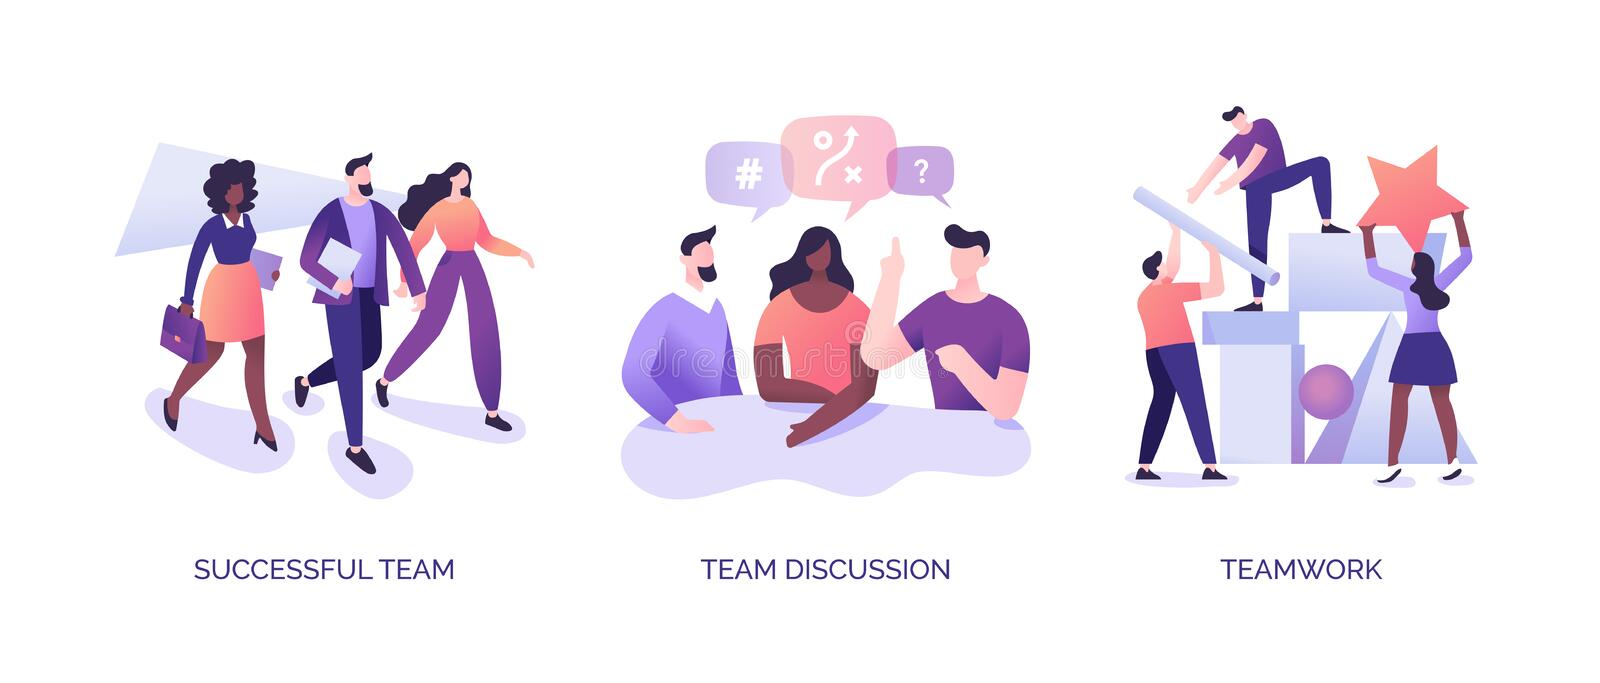 Teamwork Illustrations Set. The basics of teamwork. Communication and coordination in a team. Colleagues achieve success together. Vector illustrations for vector illustration